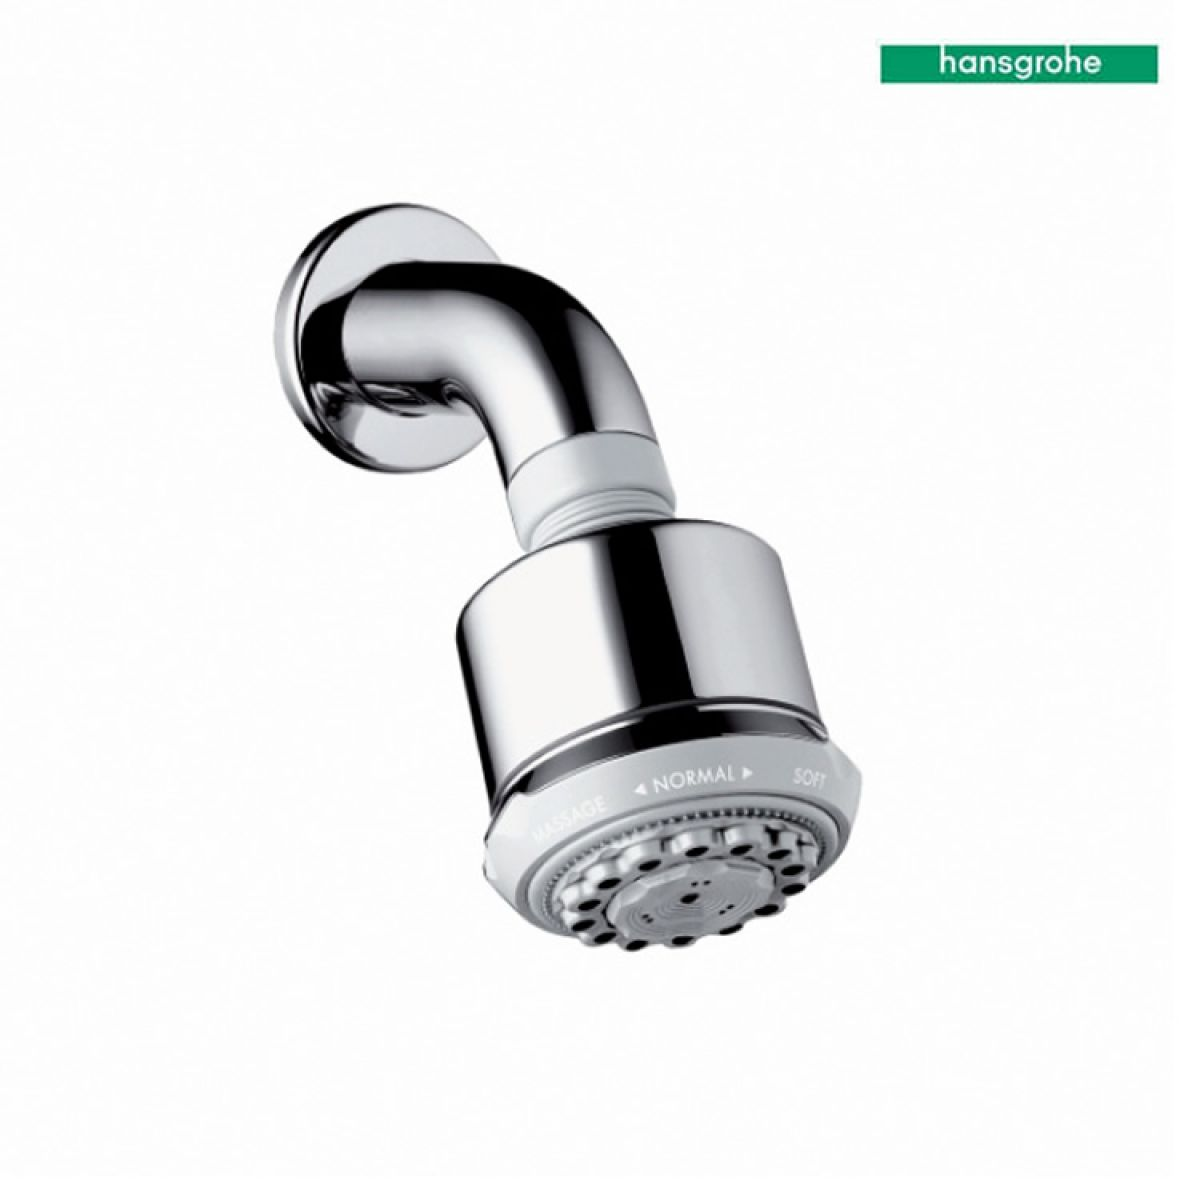 Hansgrohe Clubmaster 3 Jet Overhead Shower With Arm | Bathrooms ...